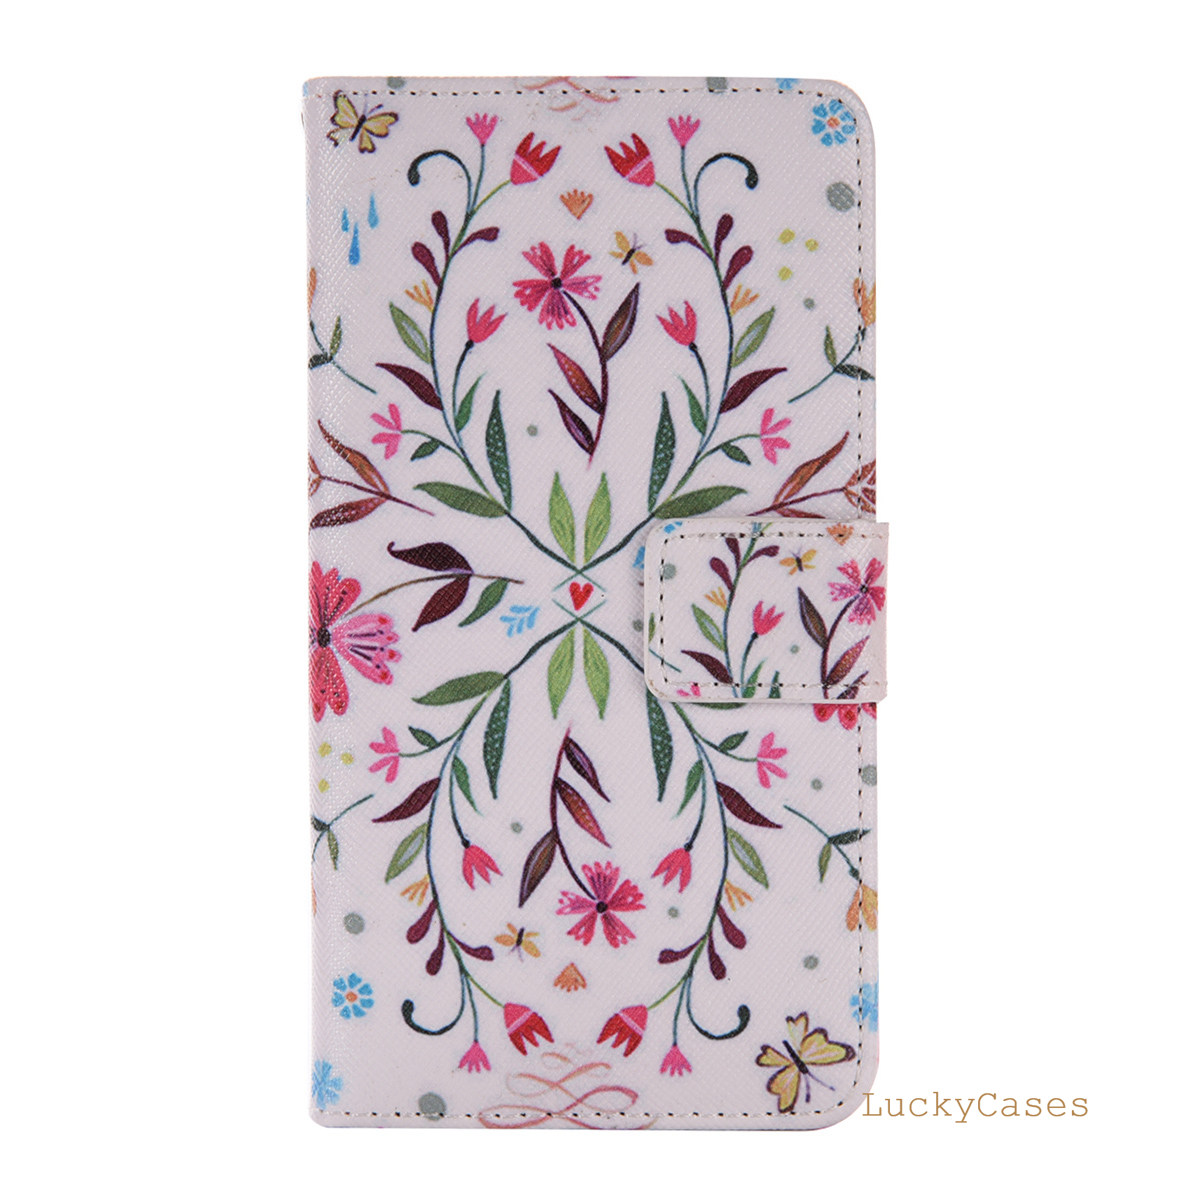 Pu leather case for samsung galaxy a7 2016 a710 peacock feather - For Fundas Samsung A310 A3 2016 Pu Leather Magnetic Flip Wallet Flower Painted Phone Cases For